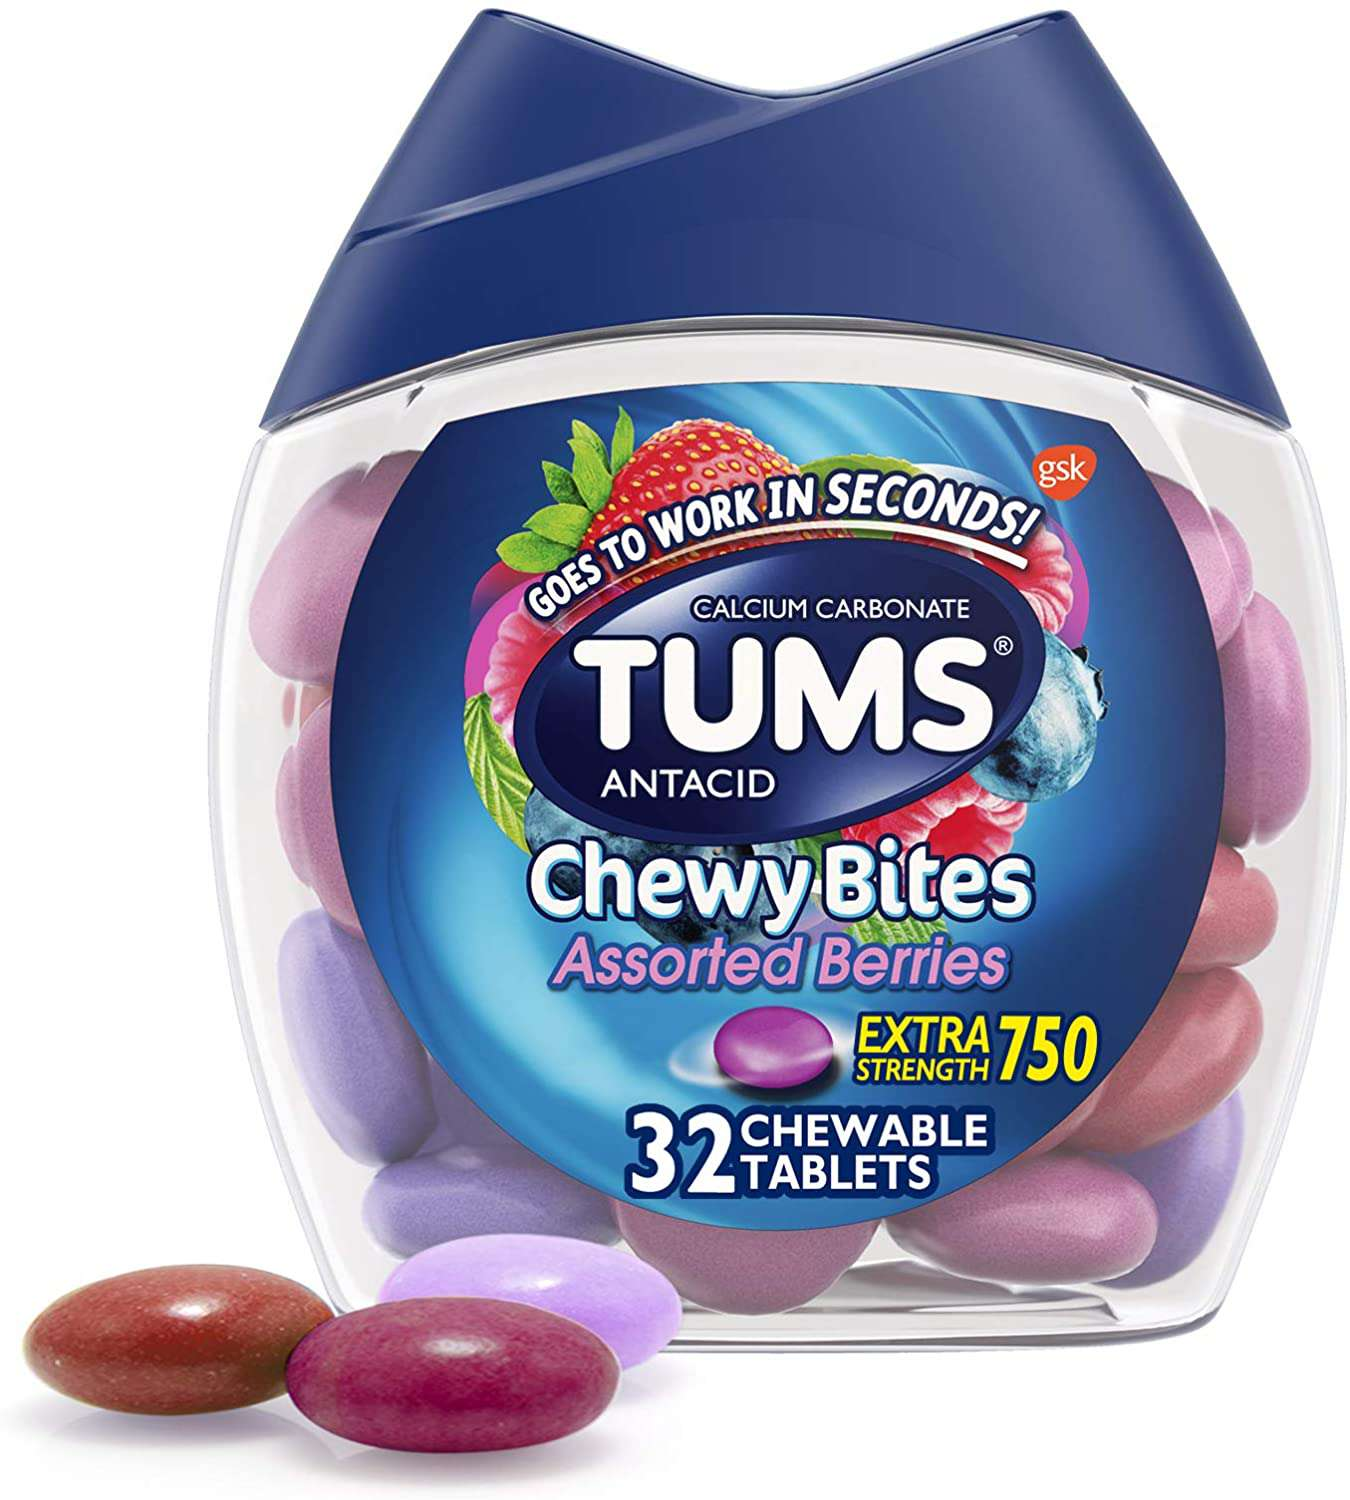 TUMS Chewy Bites Antacid Tablets